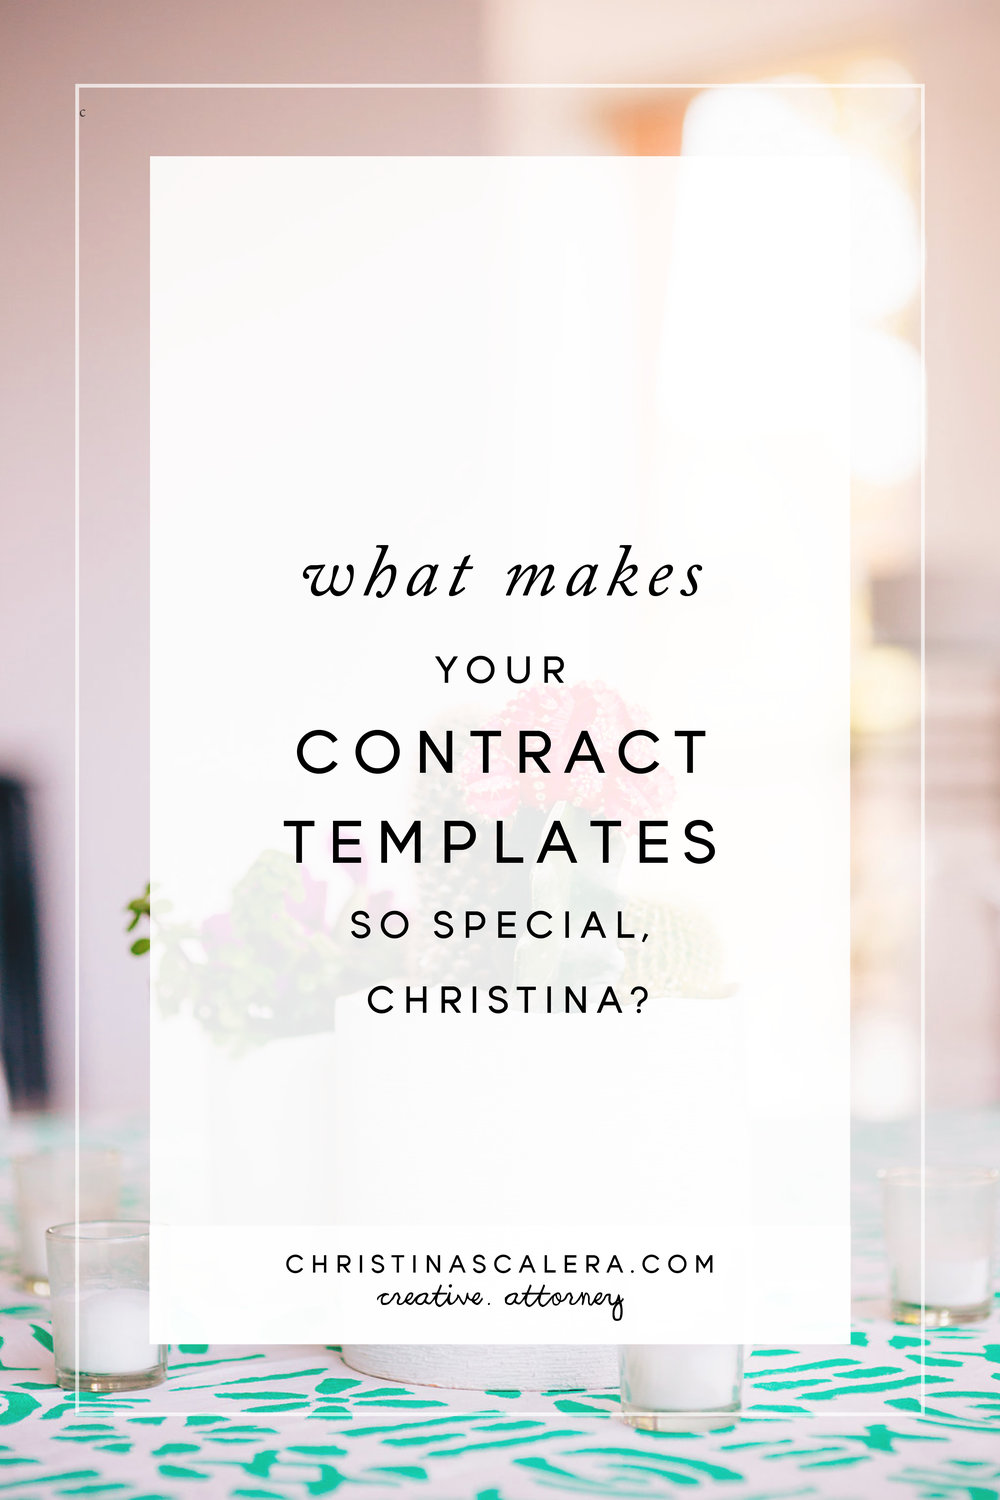 What makes your contracts templates so special Christina? legal tips for creatives...